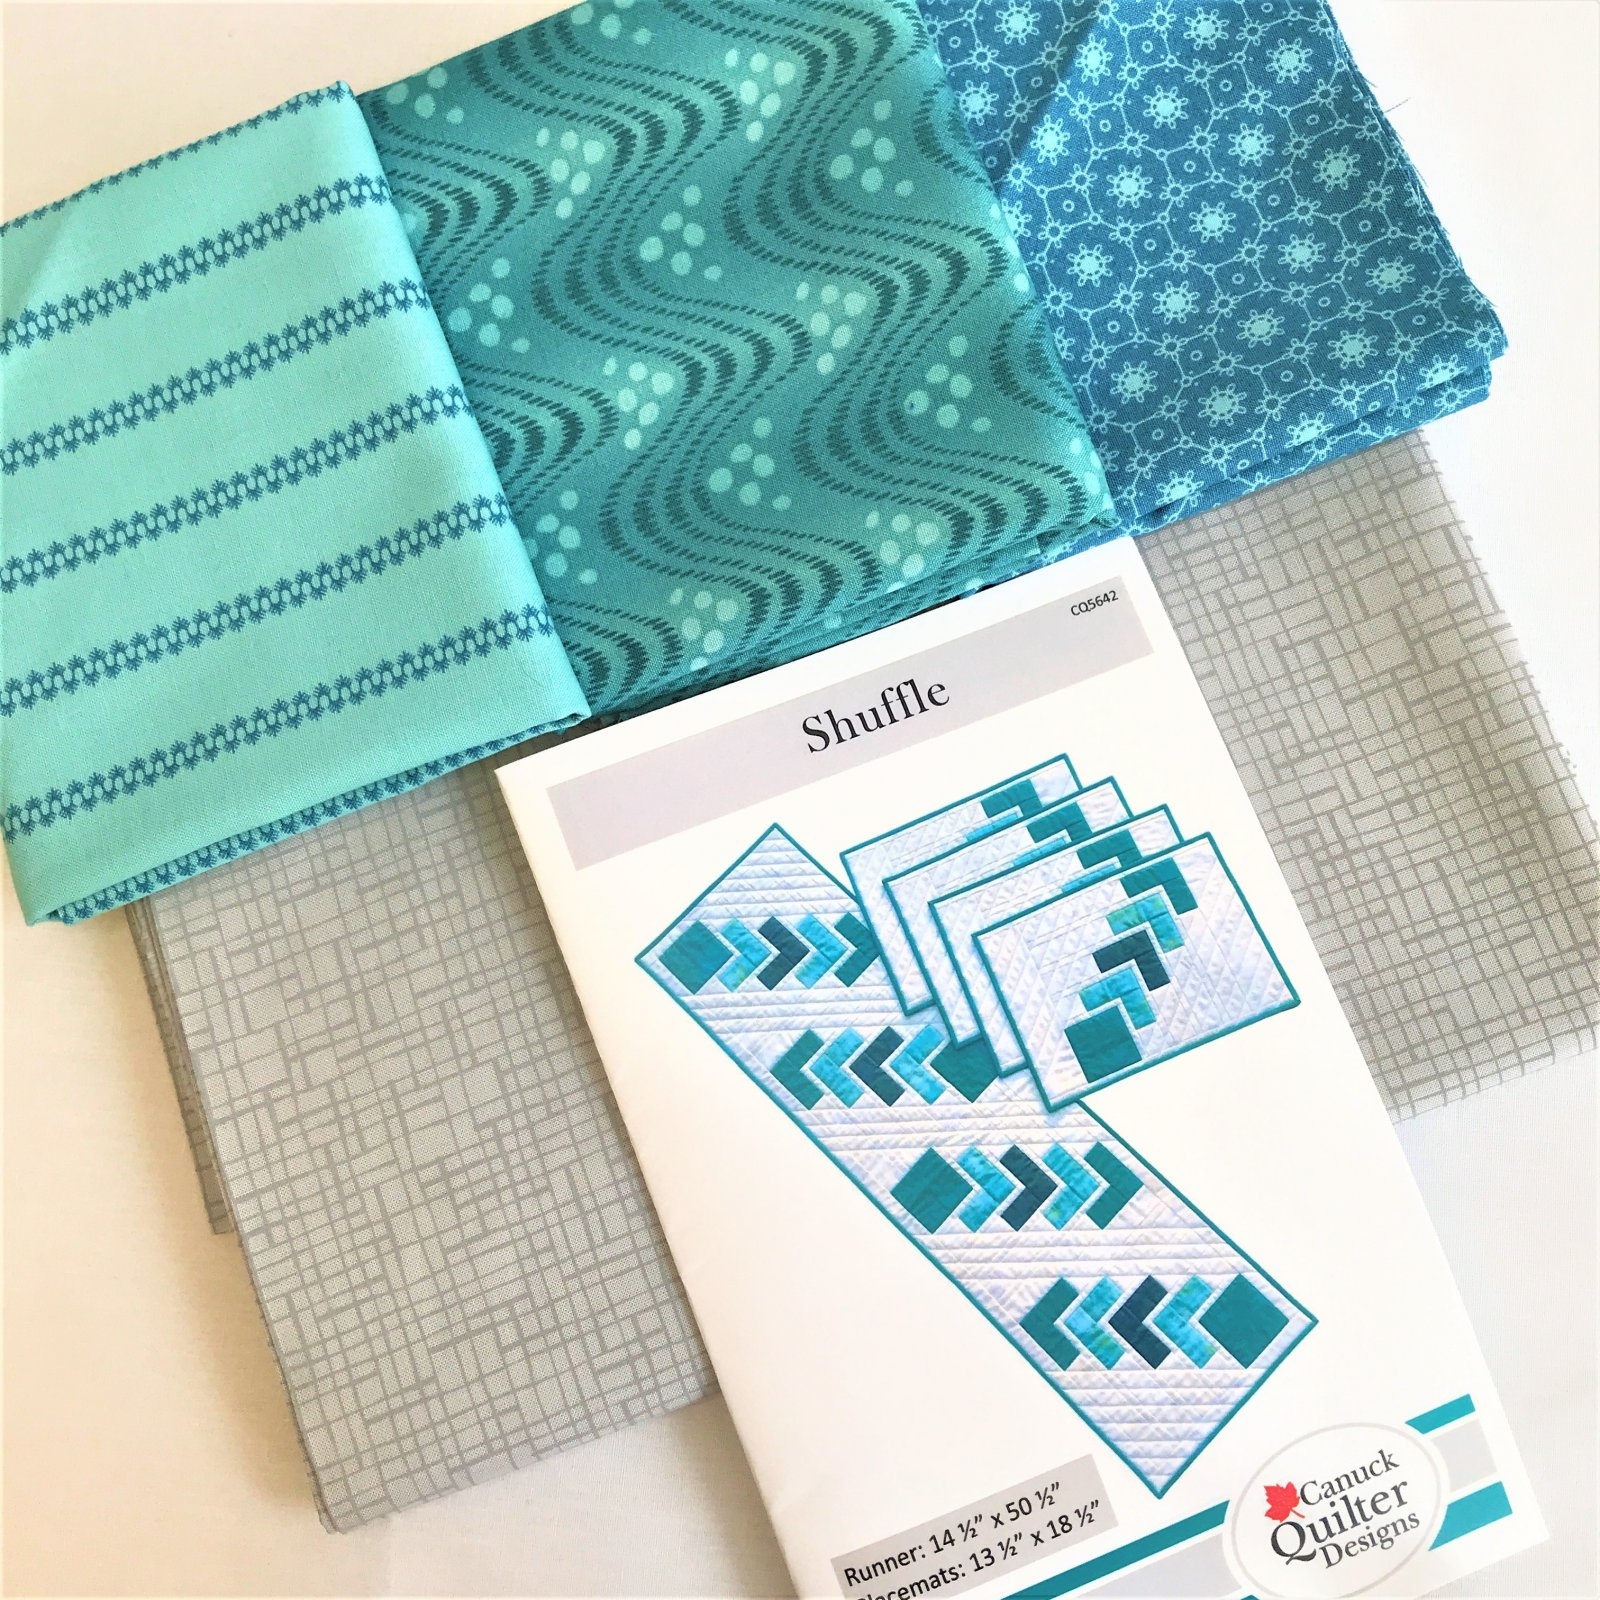 Shuffle Placemat and Runner Kit